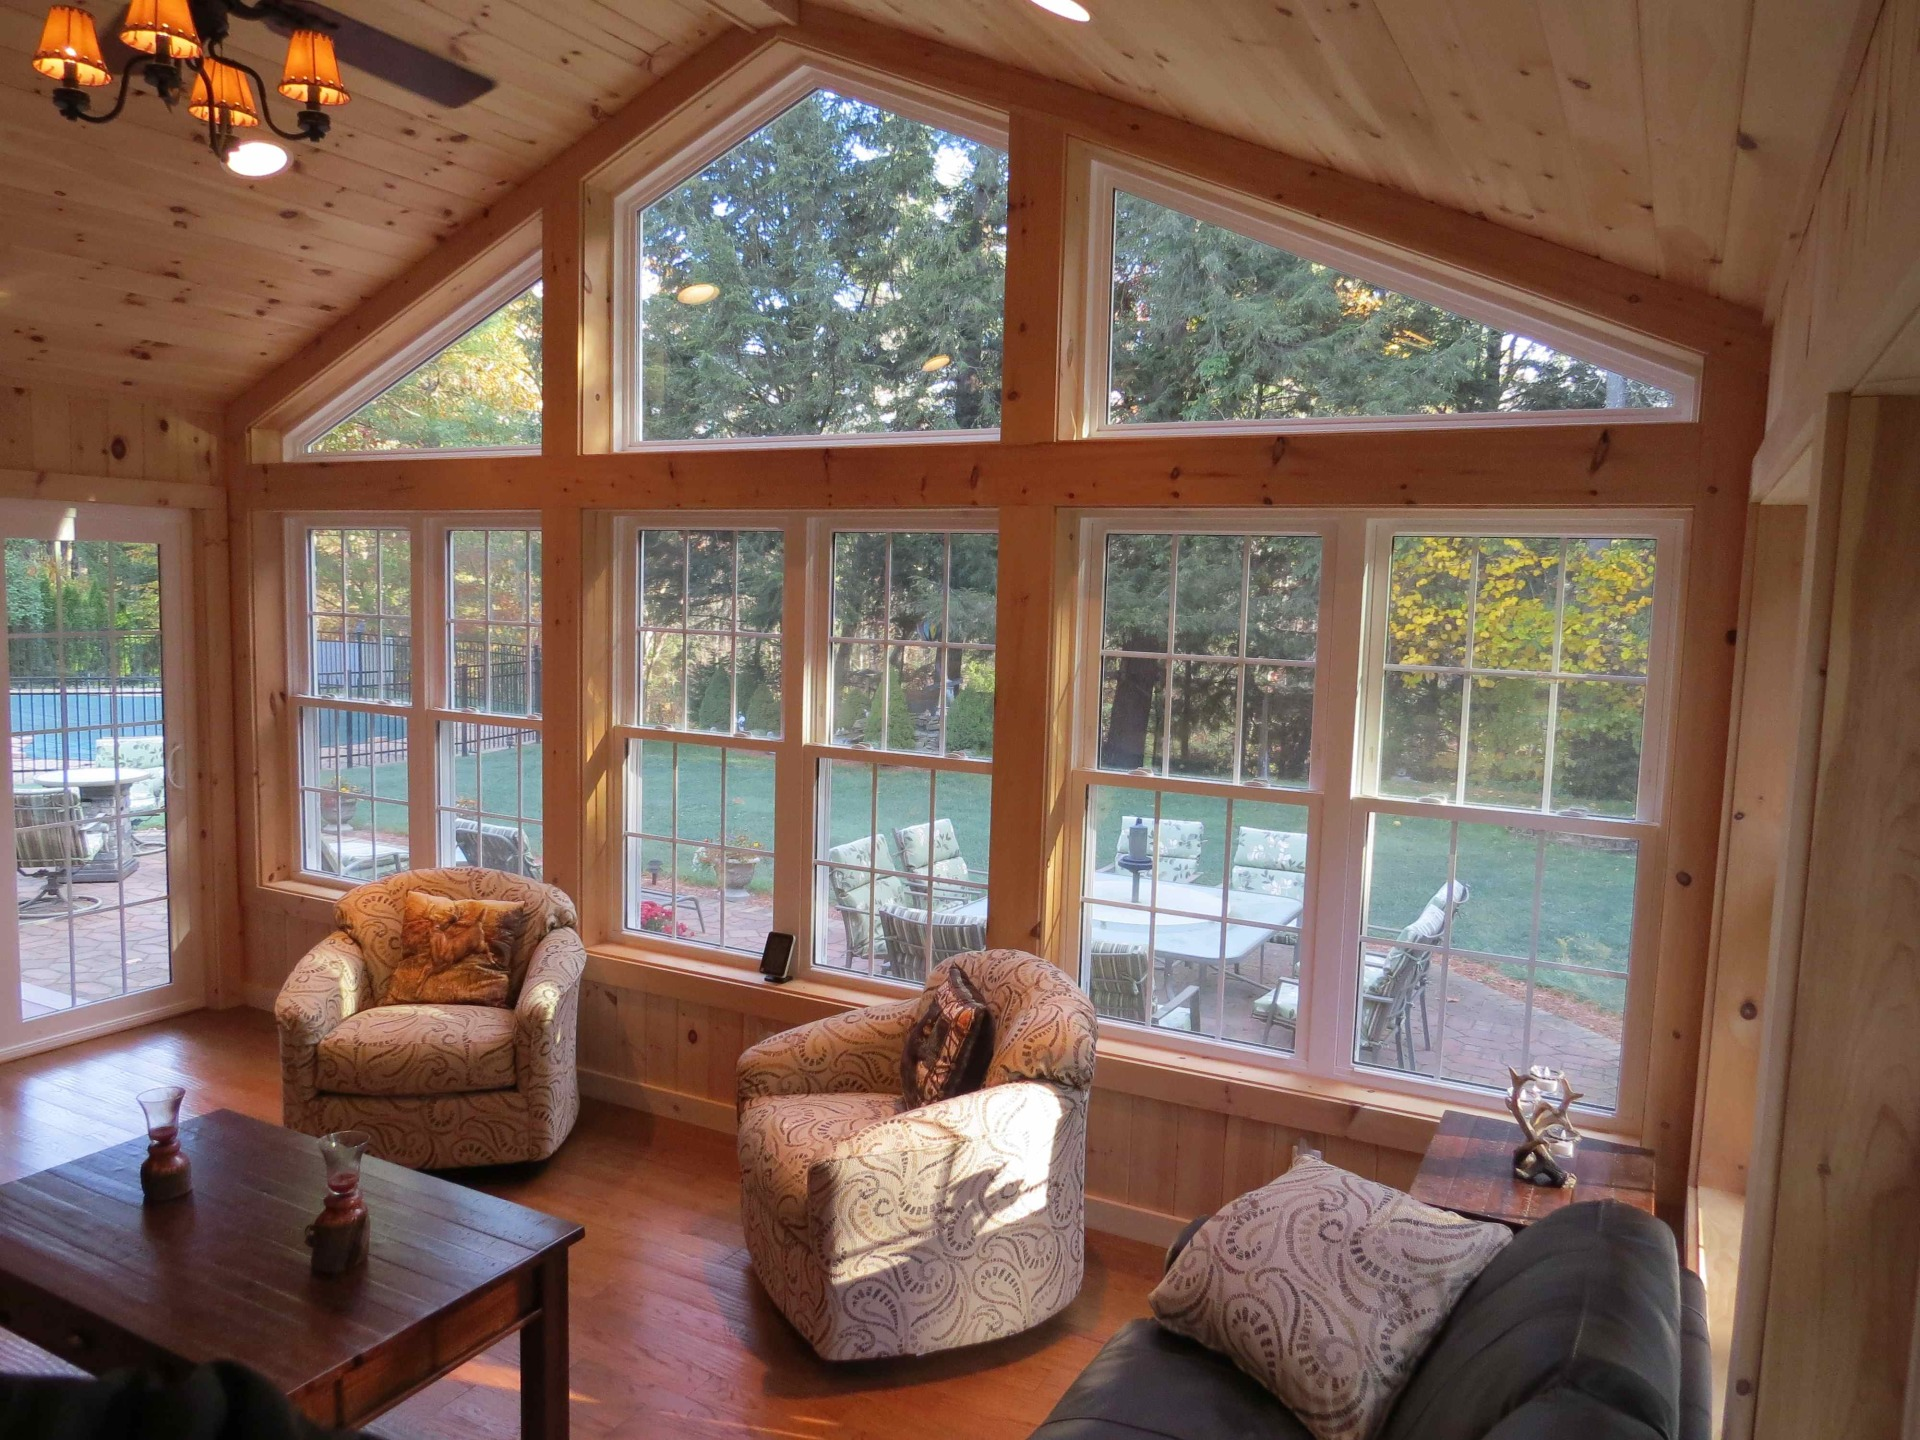 Morgan exteriors design build sunrooms and replacement for 4 season sunroom